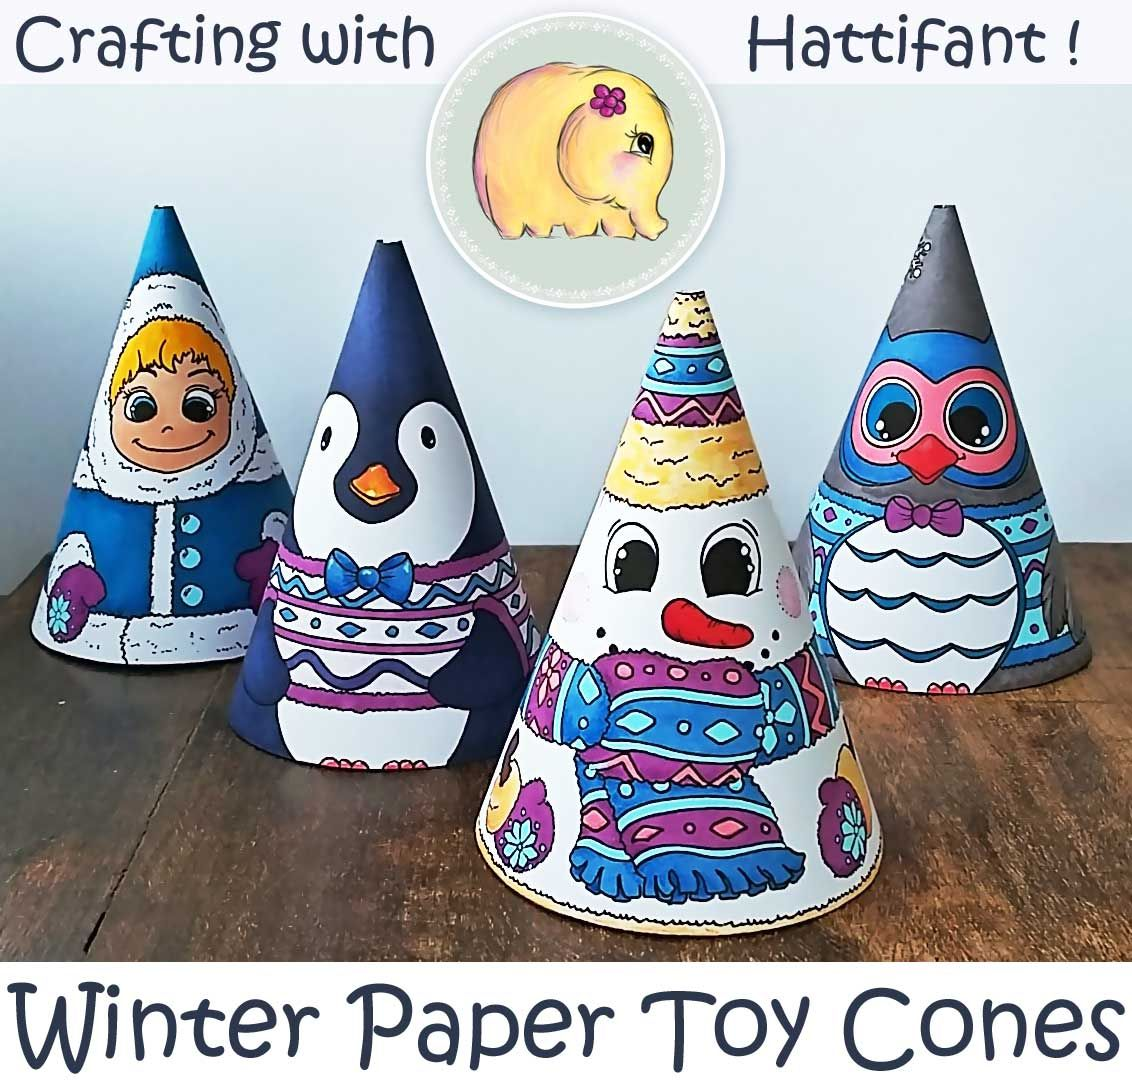 Winter Paper Toy Cones Snowman Owl And More Hattifant Winter Paper Paper Toys Papercraft Printable